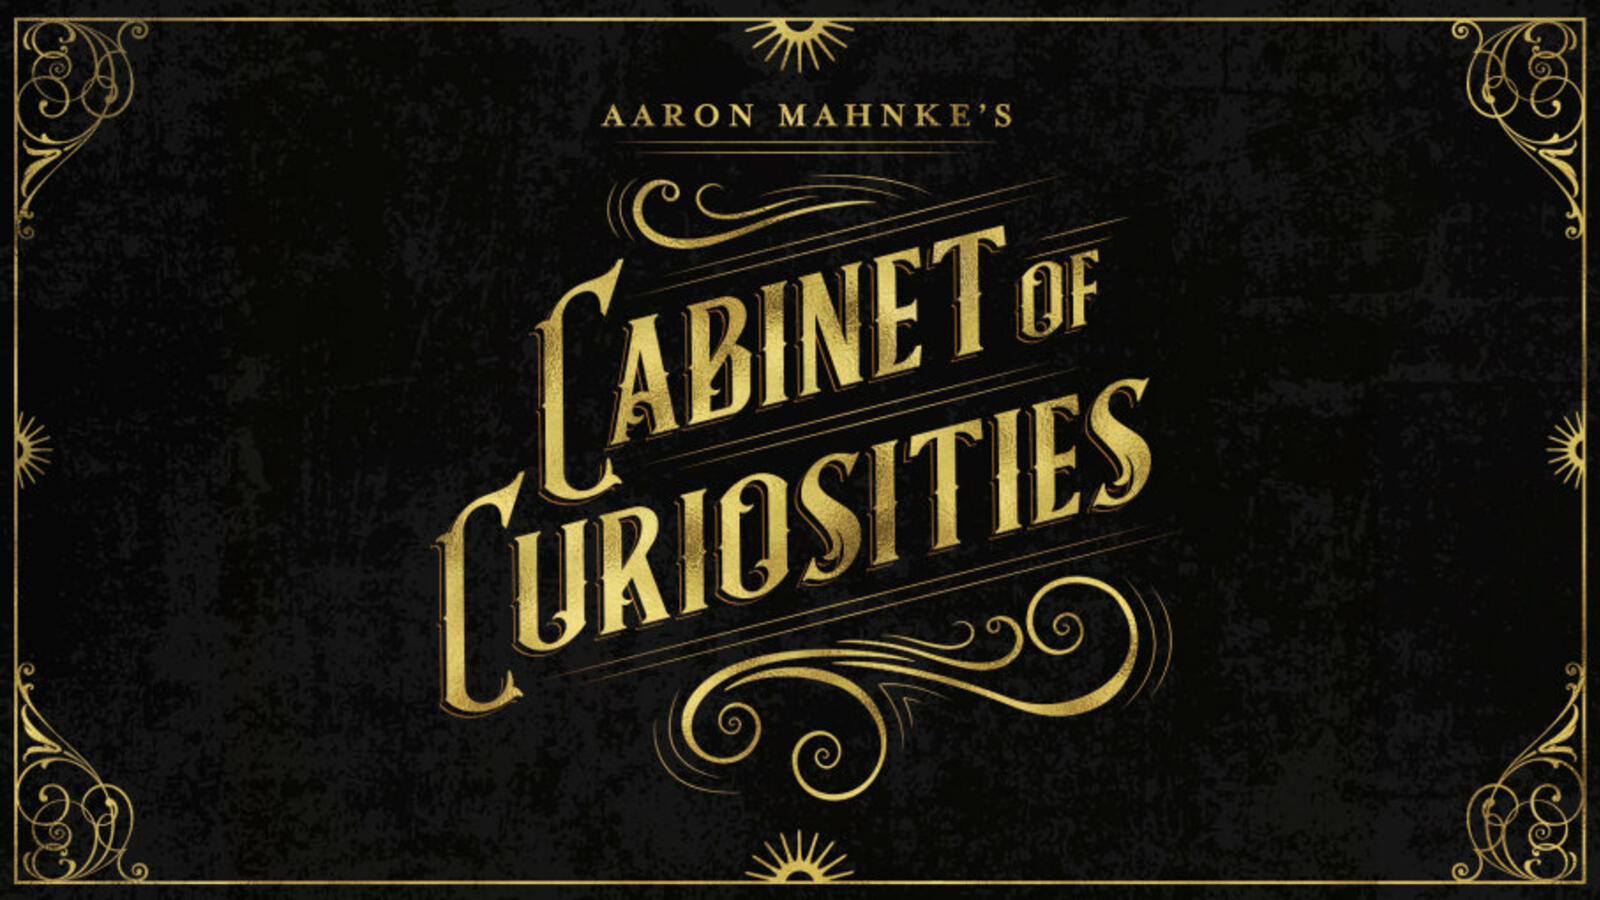 About Aaron Mahnke's Cabinet of Curiosities